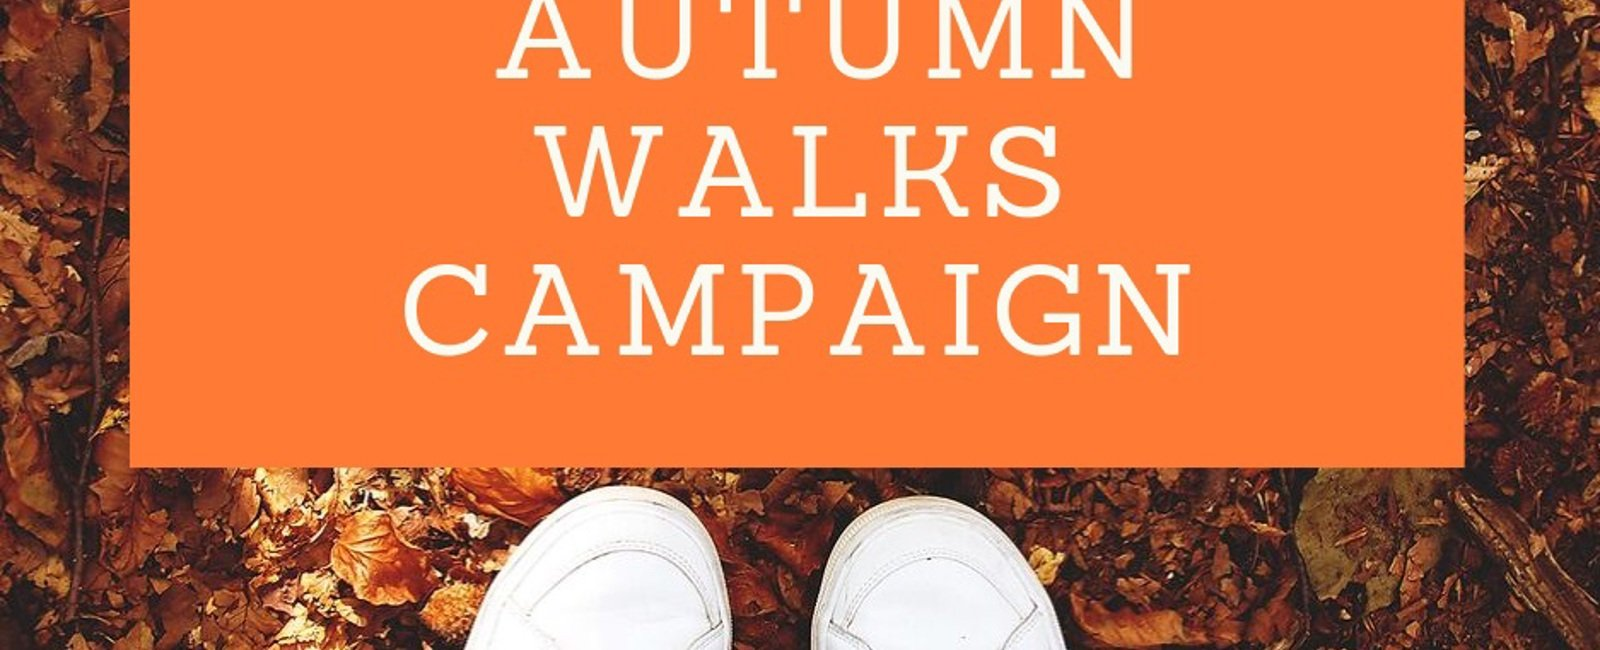 Our Autumn Walks Campaign